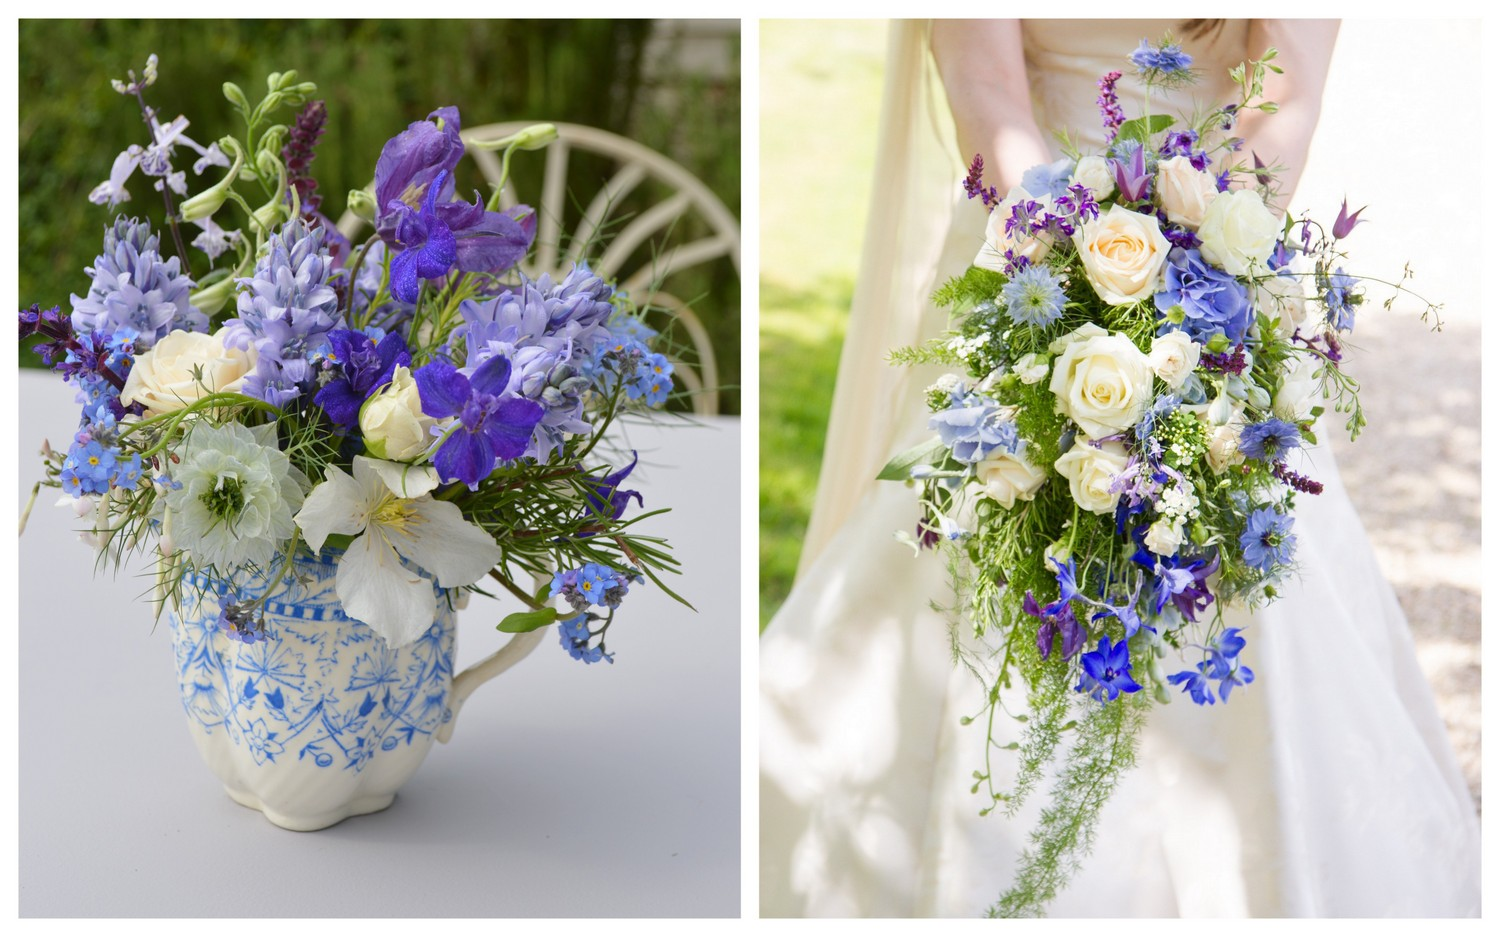 Blue & White cascading wedding bouquet